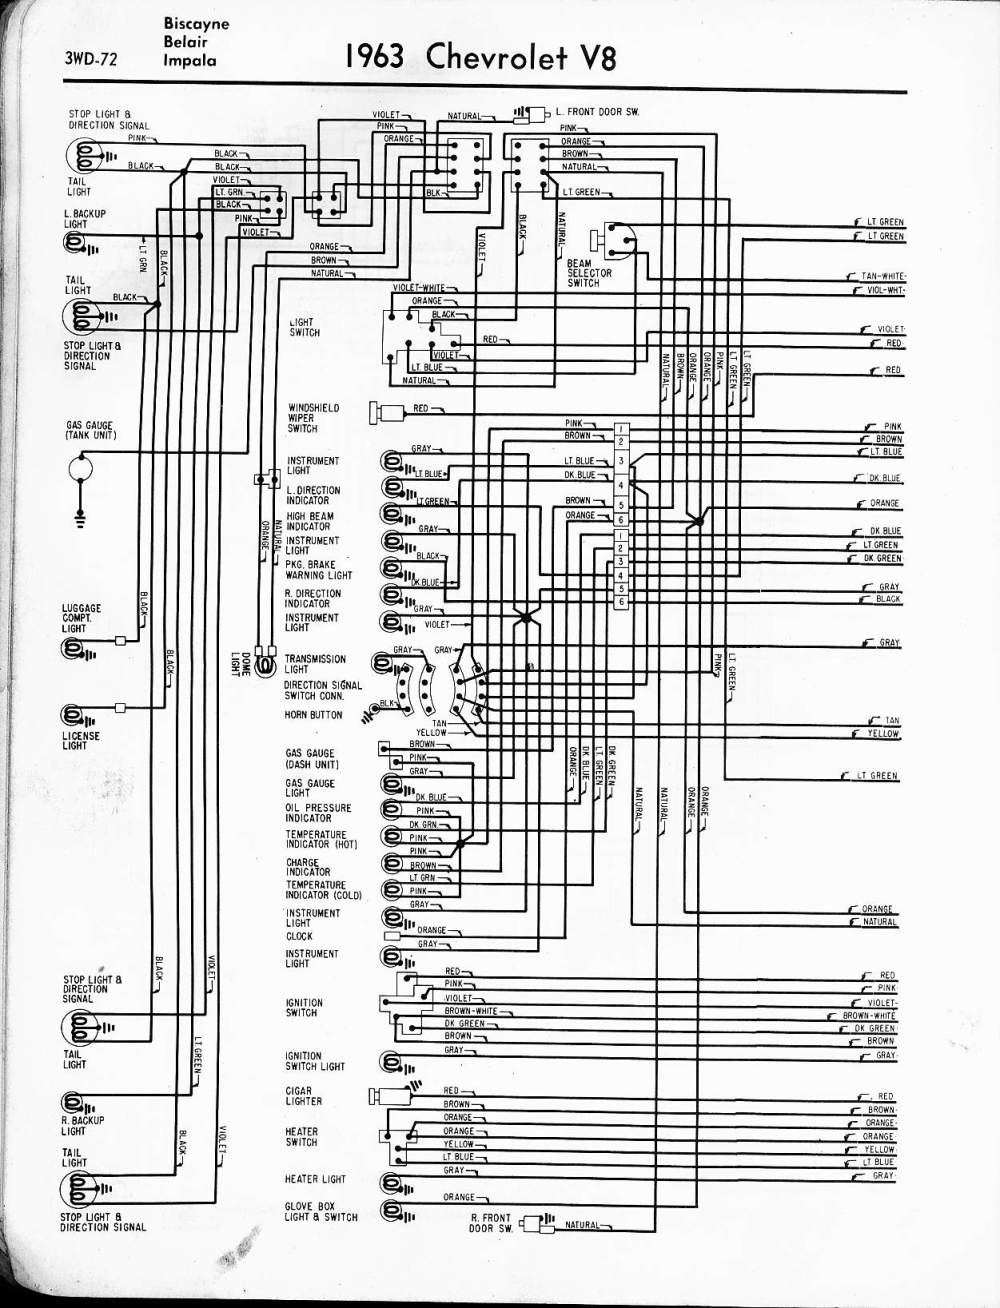 medium resolution of 1963 chevrolet wiring schematics wiring diagram meta 1963 chevy wiring diagram wiring diagram 1963 chevrolet impala